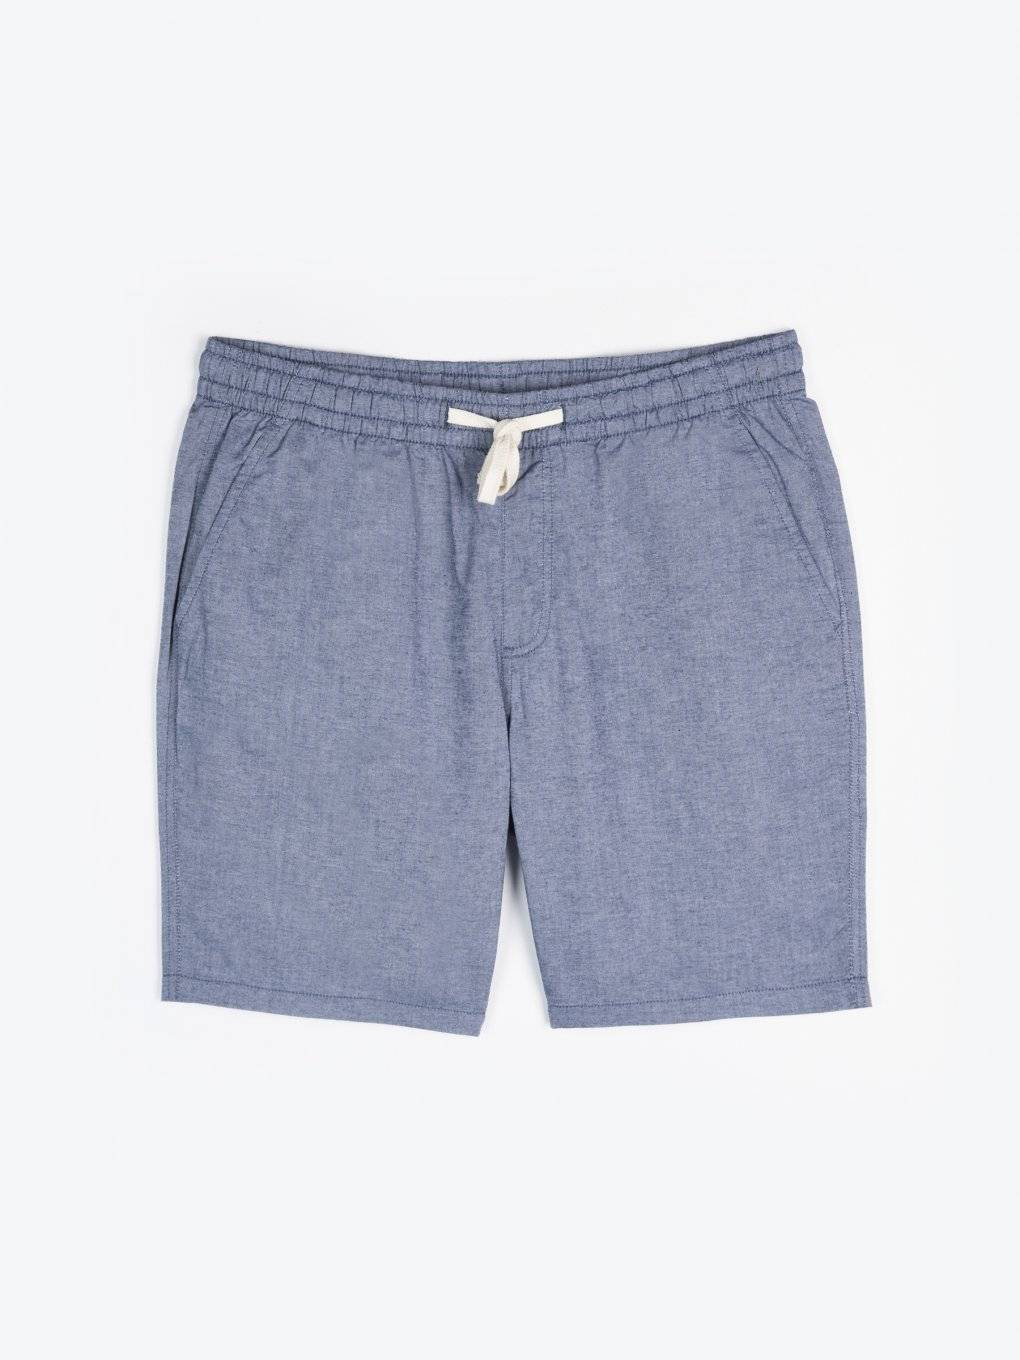 Regular fit cotton shorts